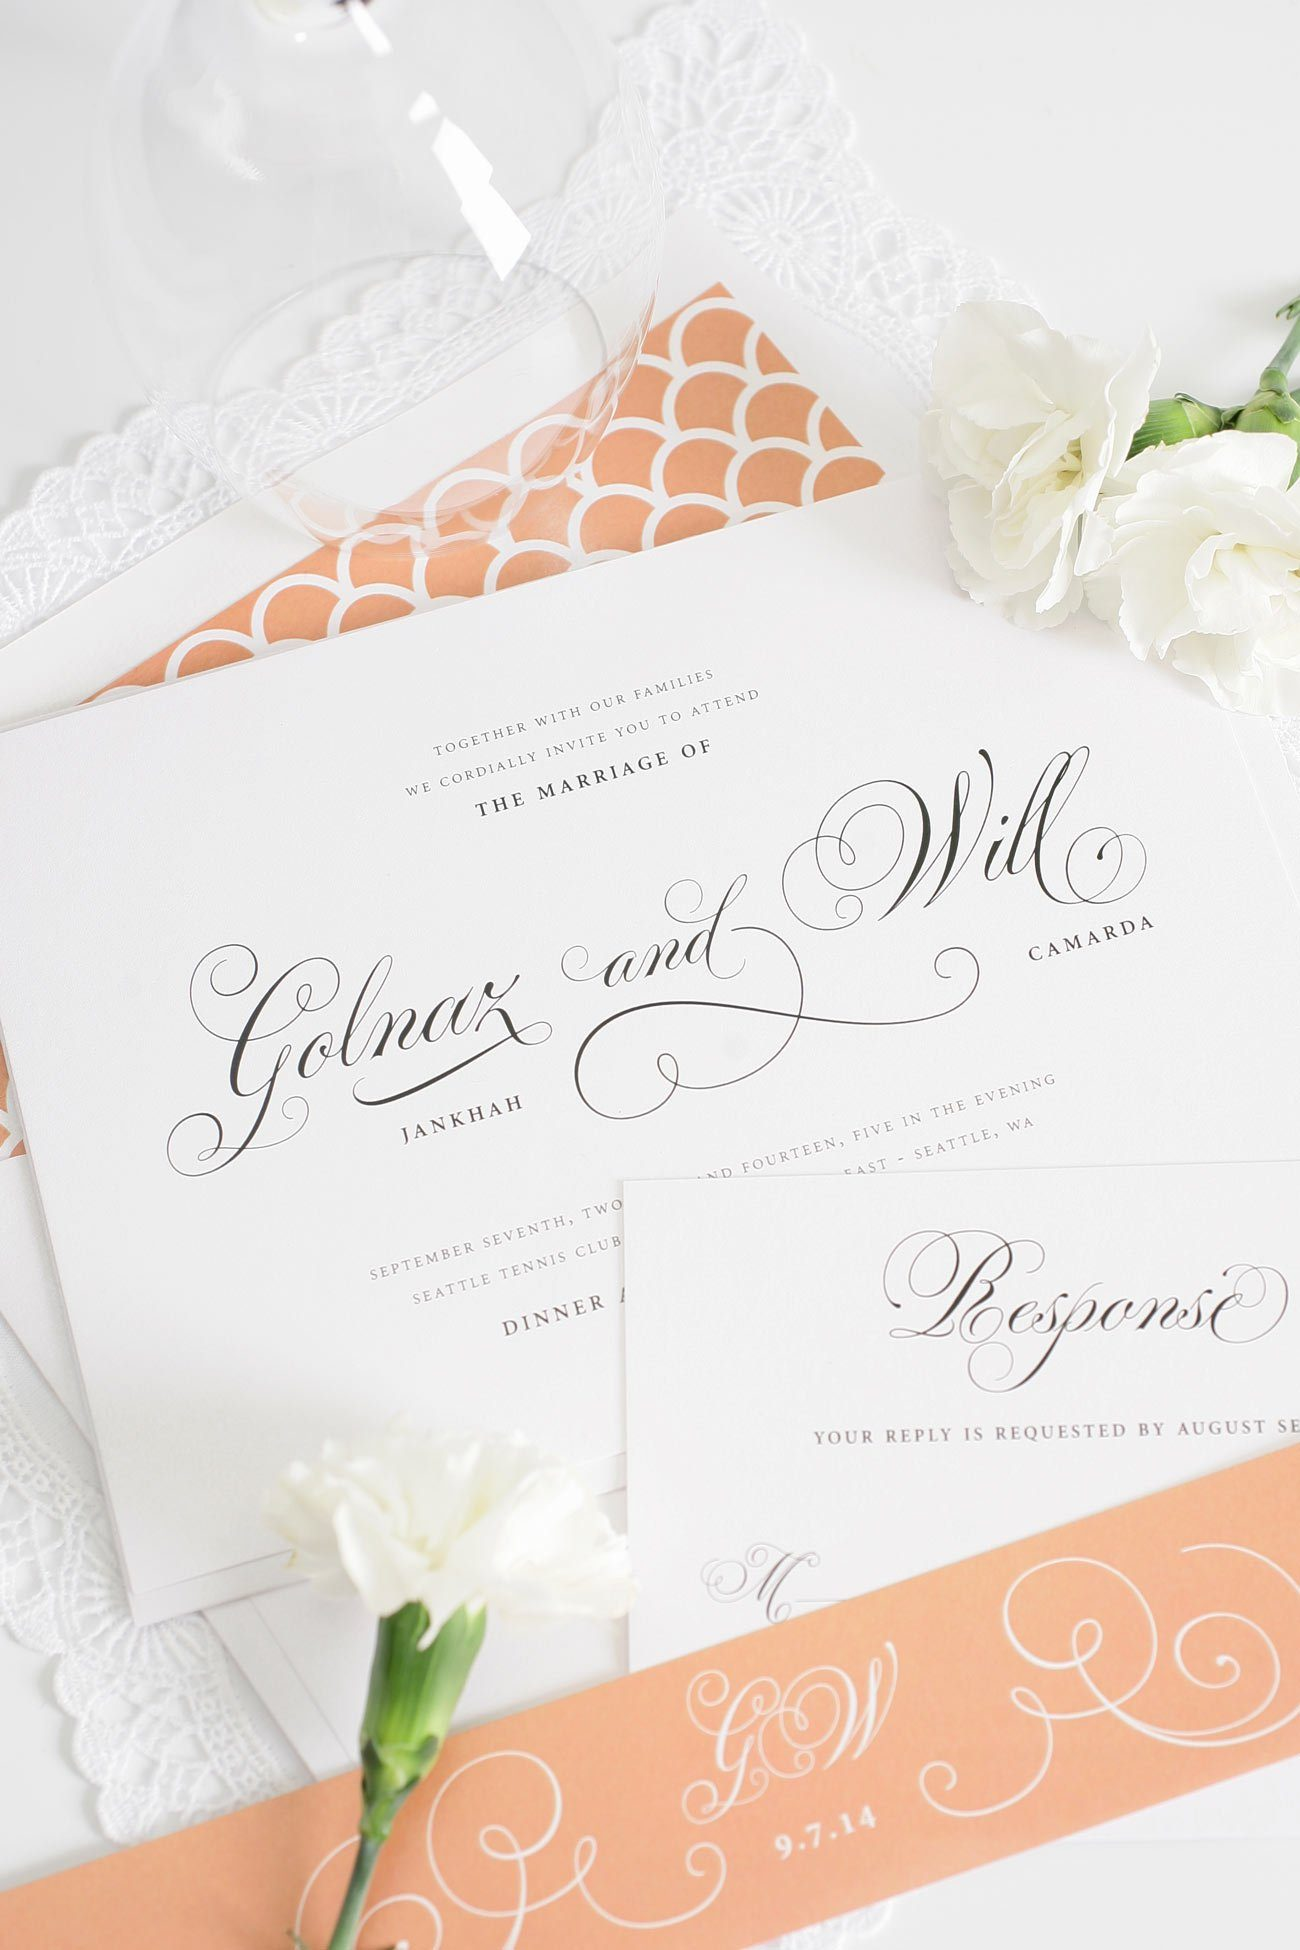 Peach wedding invitations with elegant script